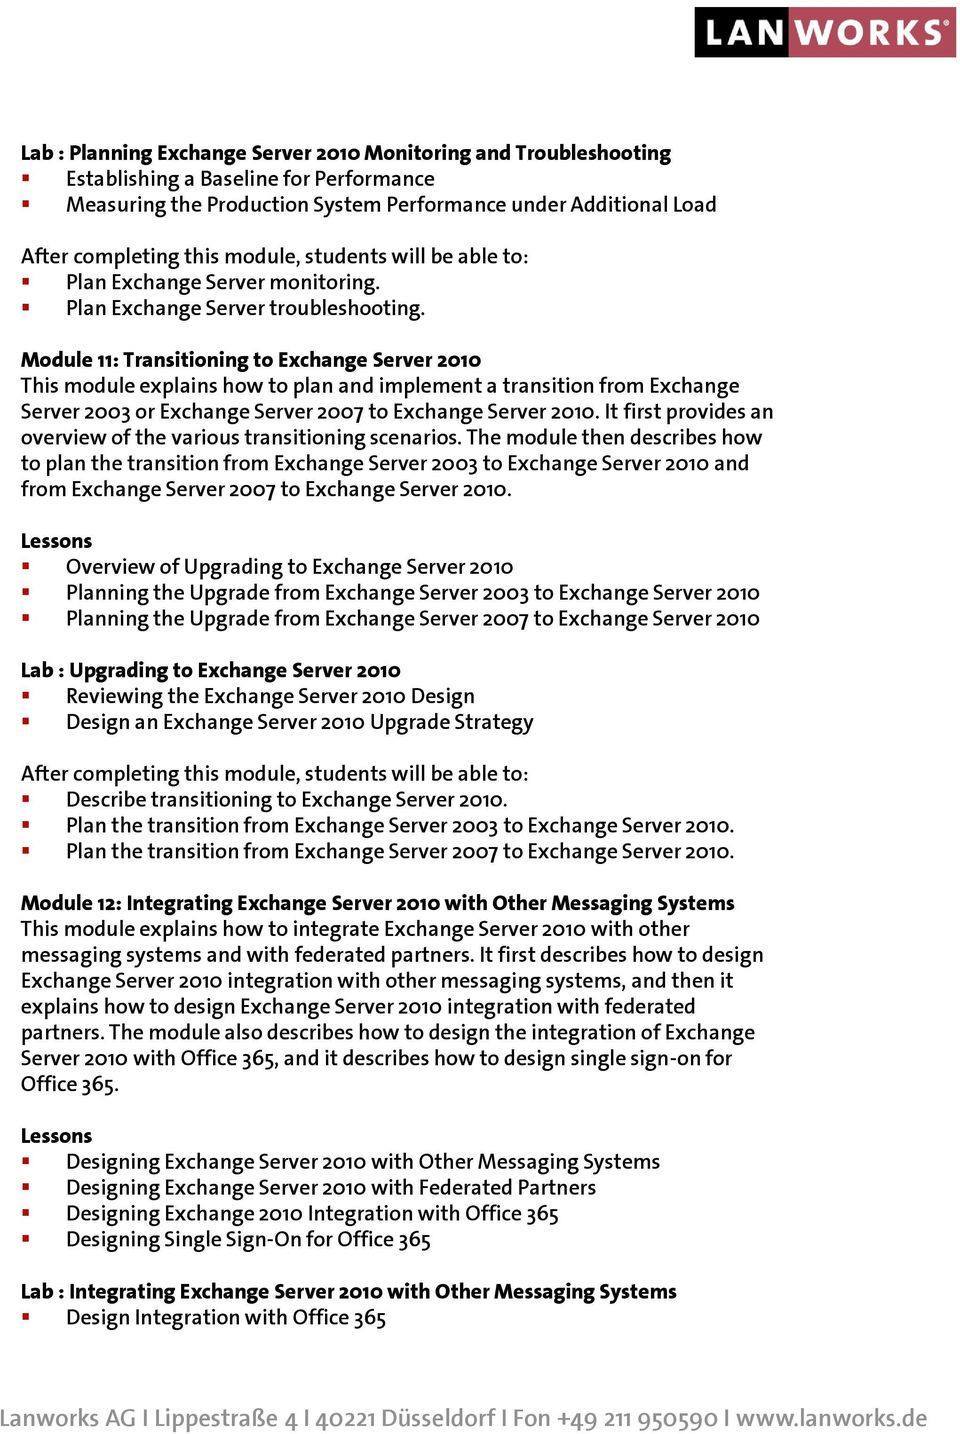 Module 11: Transitioning to Exchange Server 2010 This module explains how to plan and implement a transition from Exchange Server 2003 or Exchange Server 2007 to Exchange Server 2010.